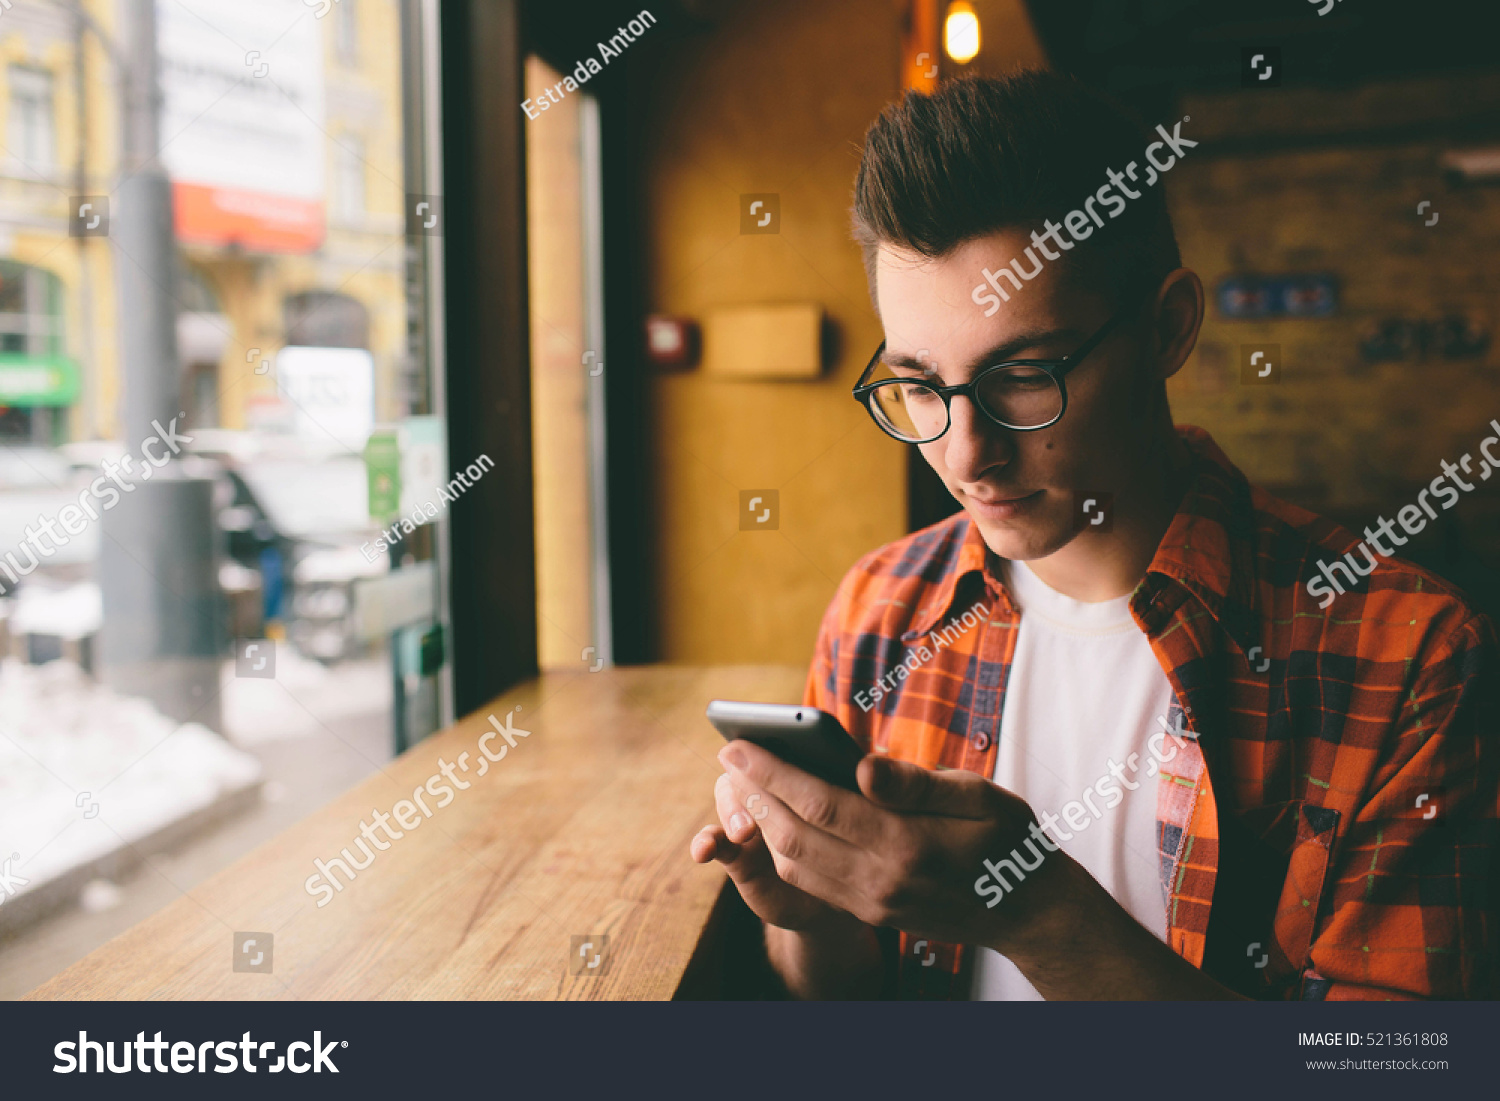 Close up on the hands of a young handsome man using a smartphone tapping the screen technology social network communication concept